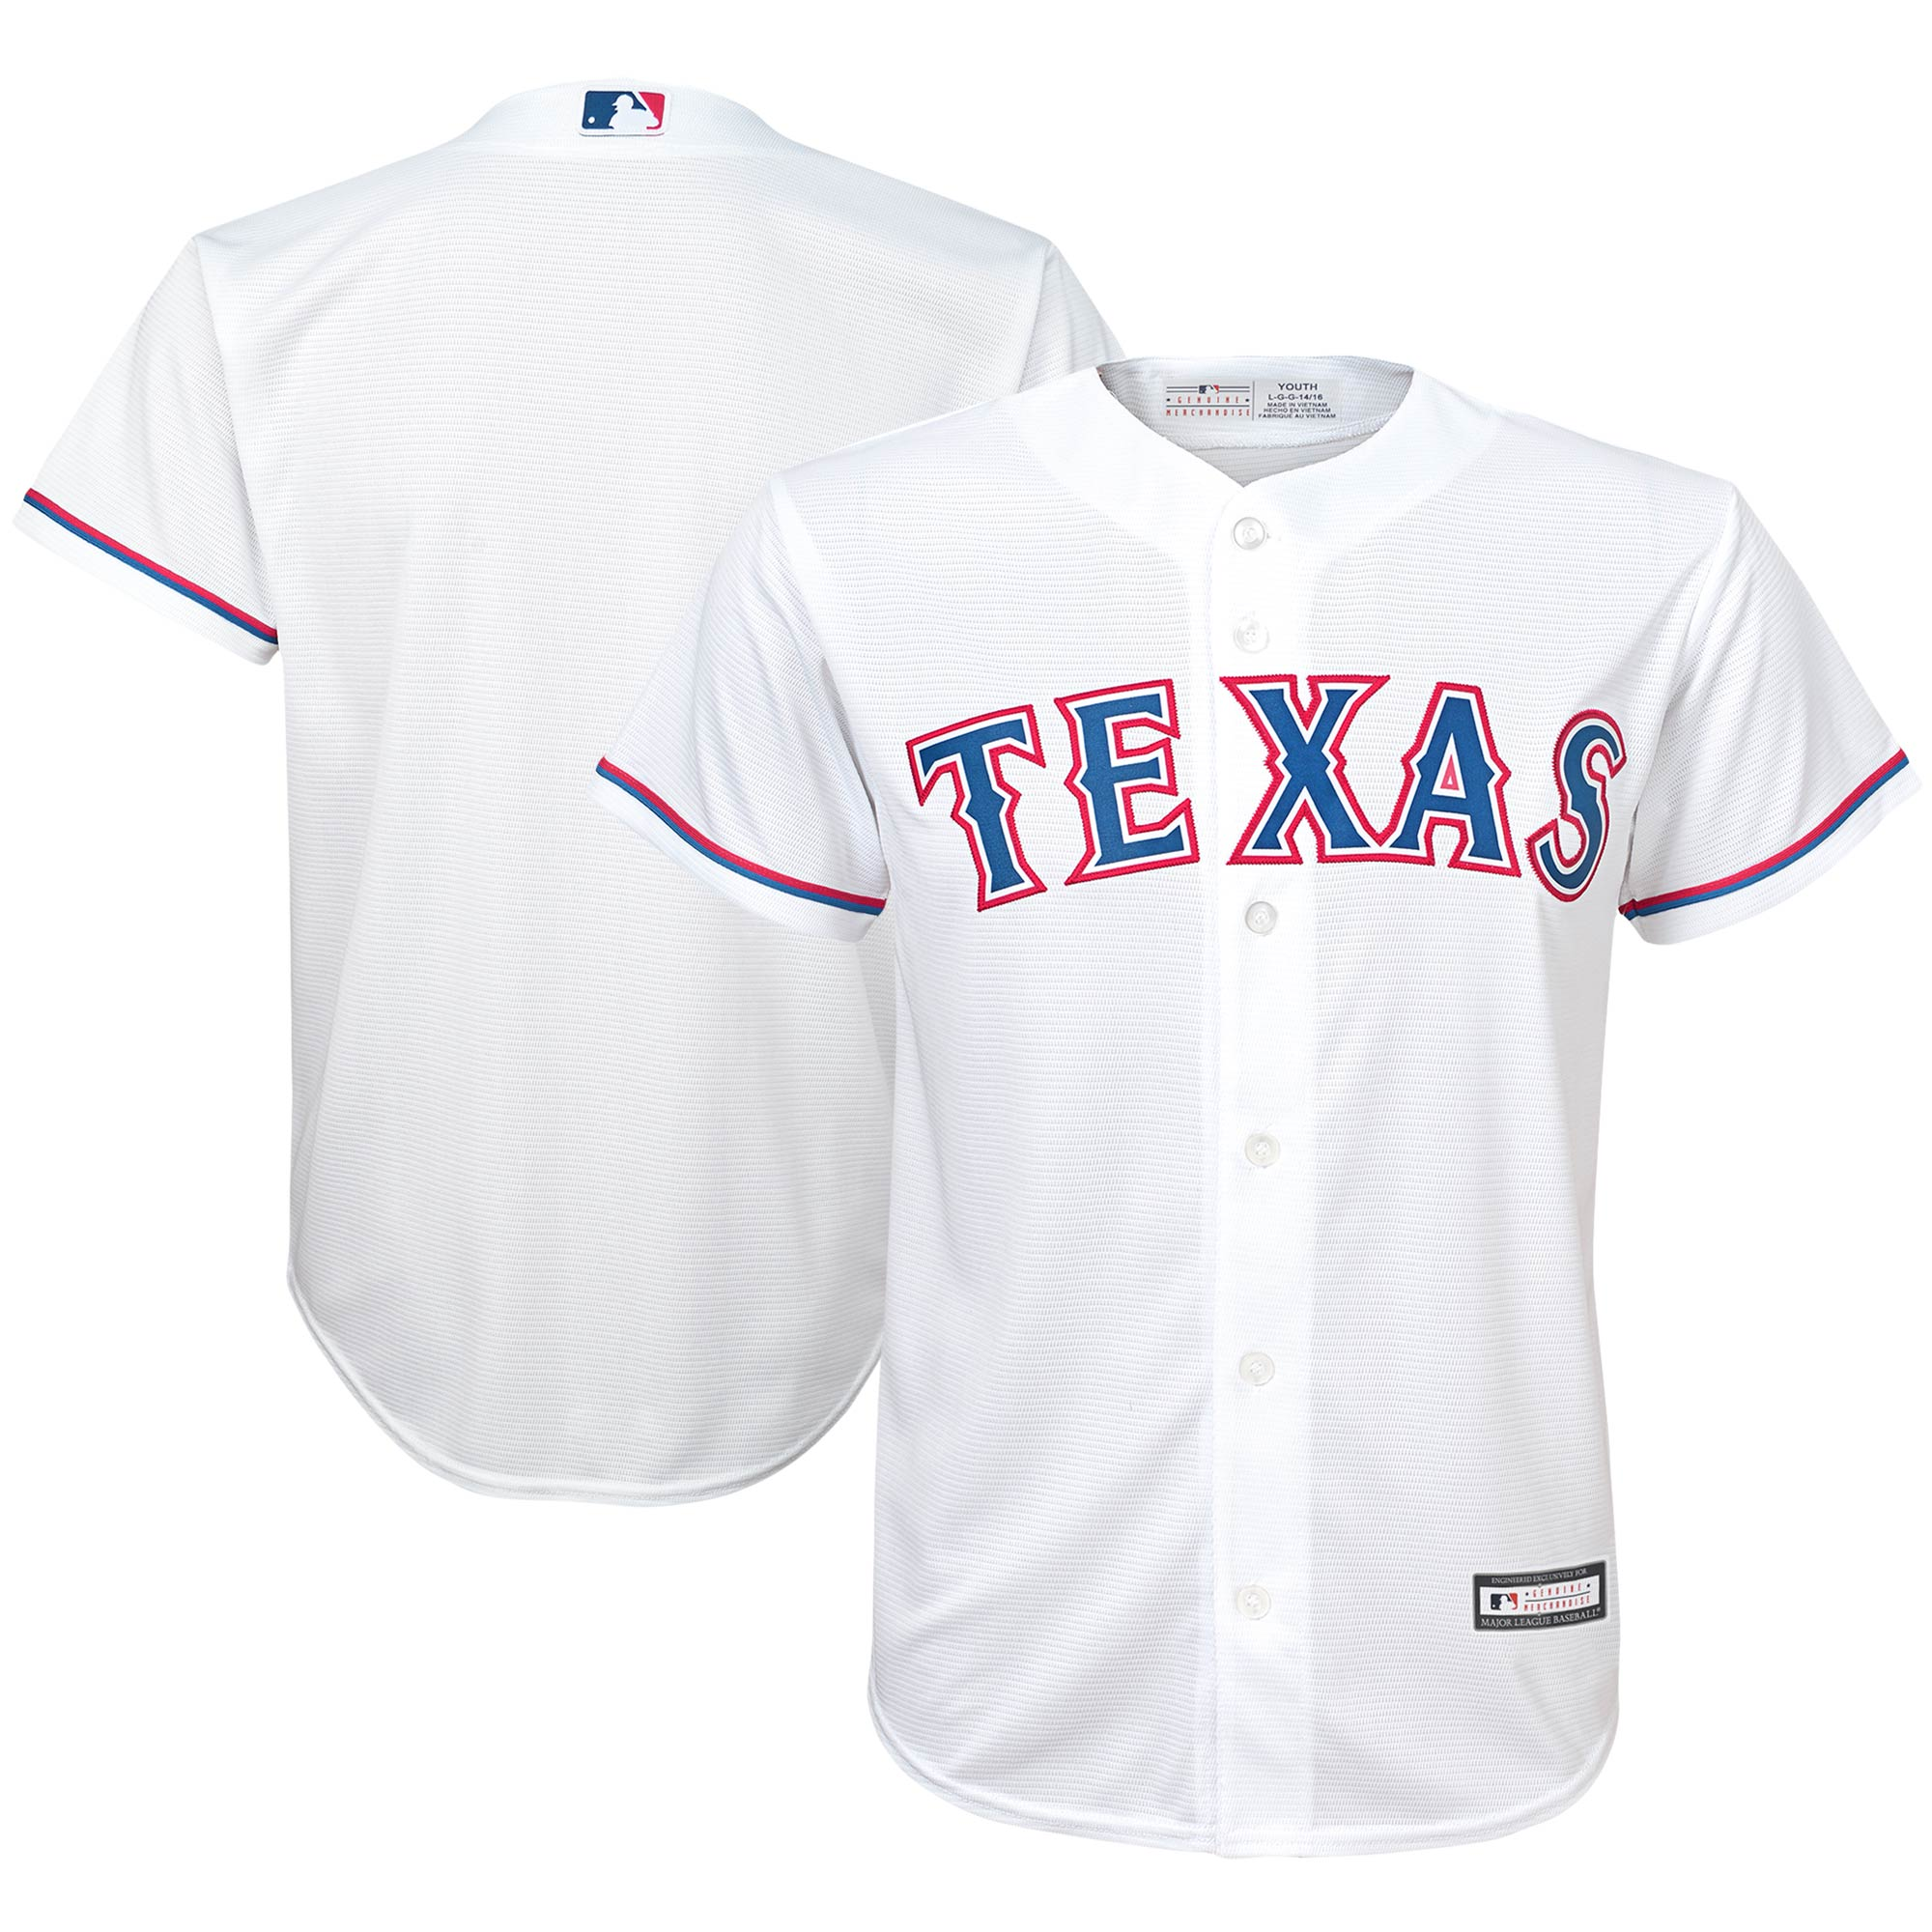 Texas Rangers Youth Replica Team Jersey - White